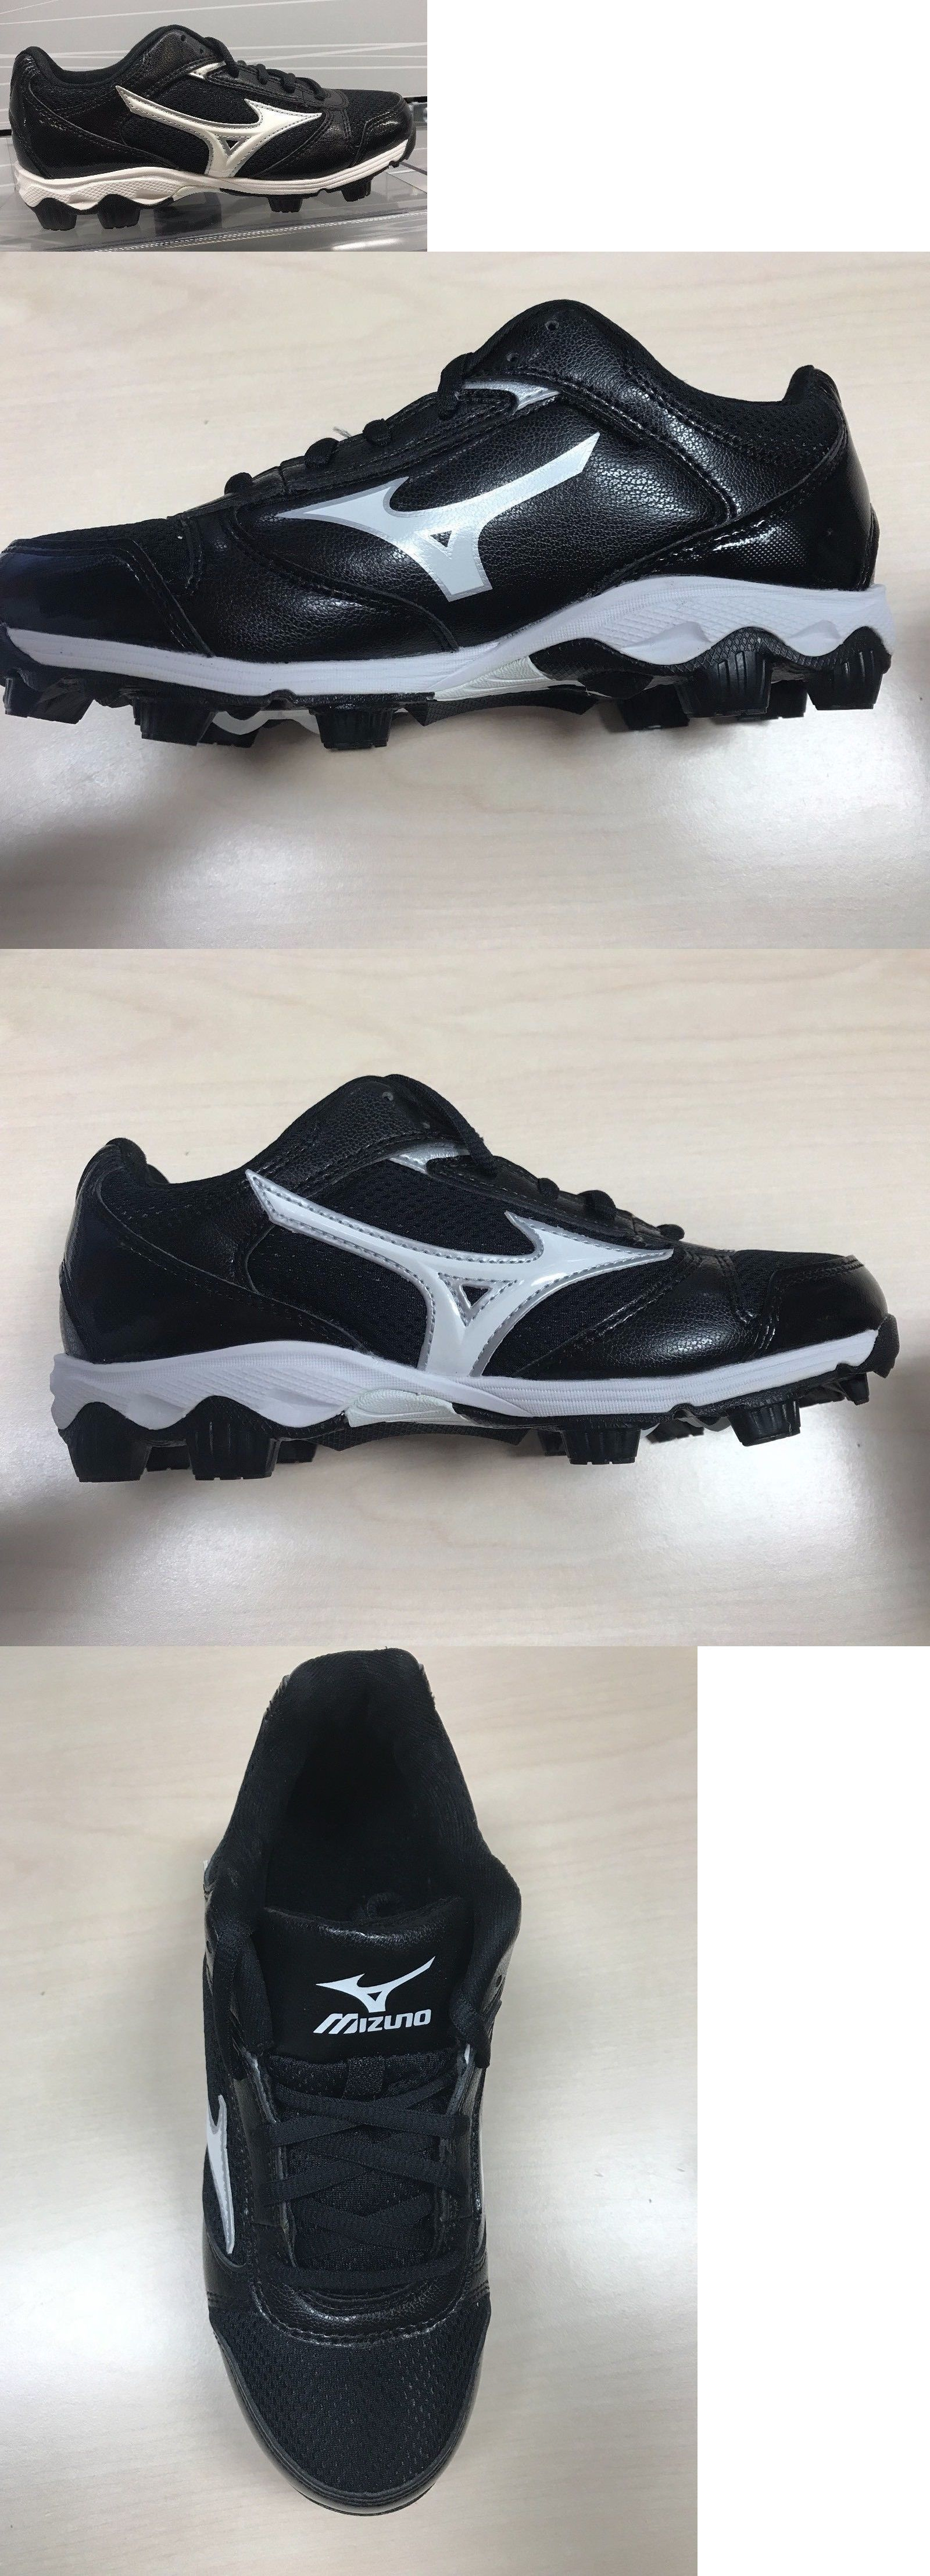 best authentic ecbb3 08b52 Youth 159061  Brand New Mizuno Youth 9 Spike Franchise Baseball Cleats  Black White 3203999000 -